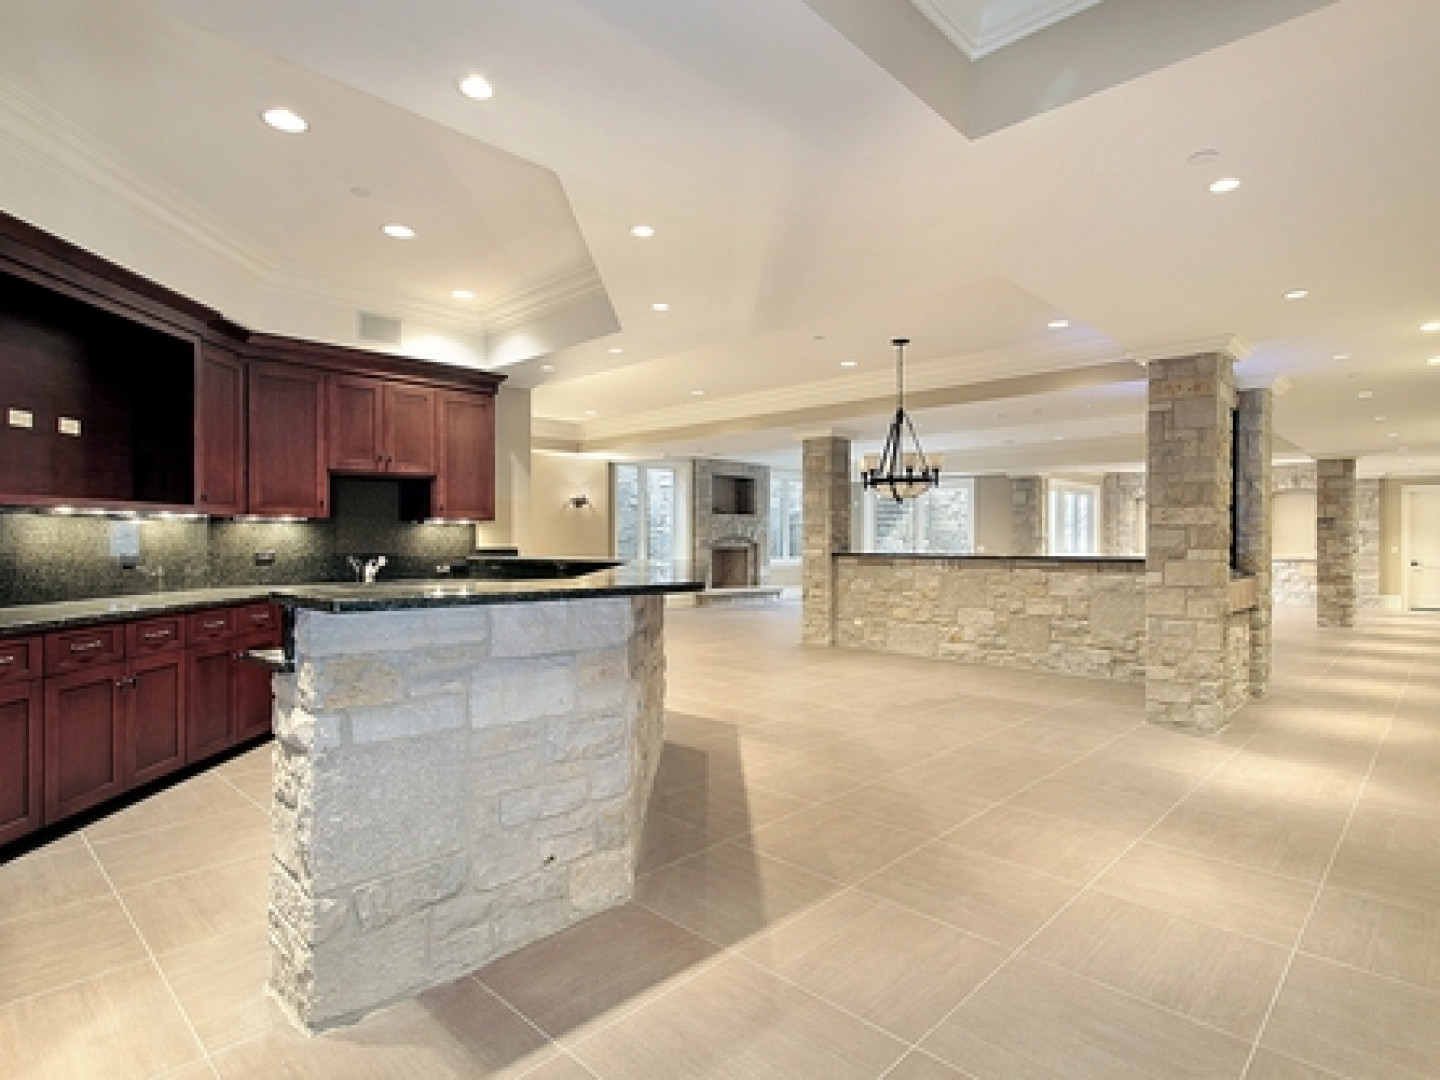 Kirby Taylor Homes can help you generate home addition ideas